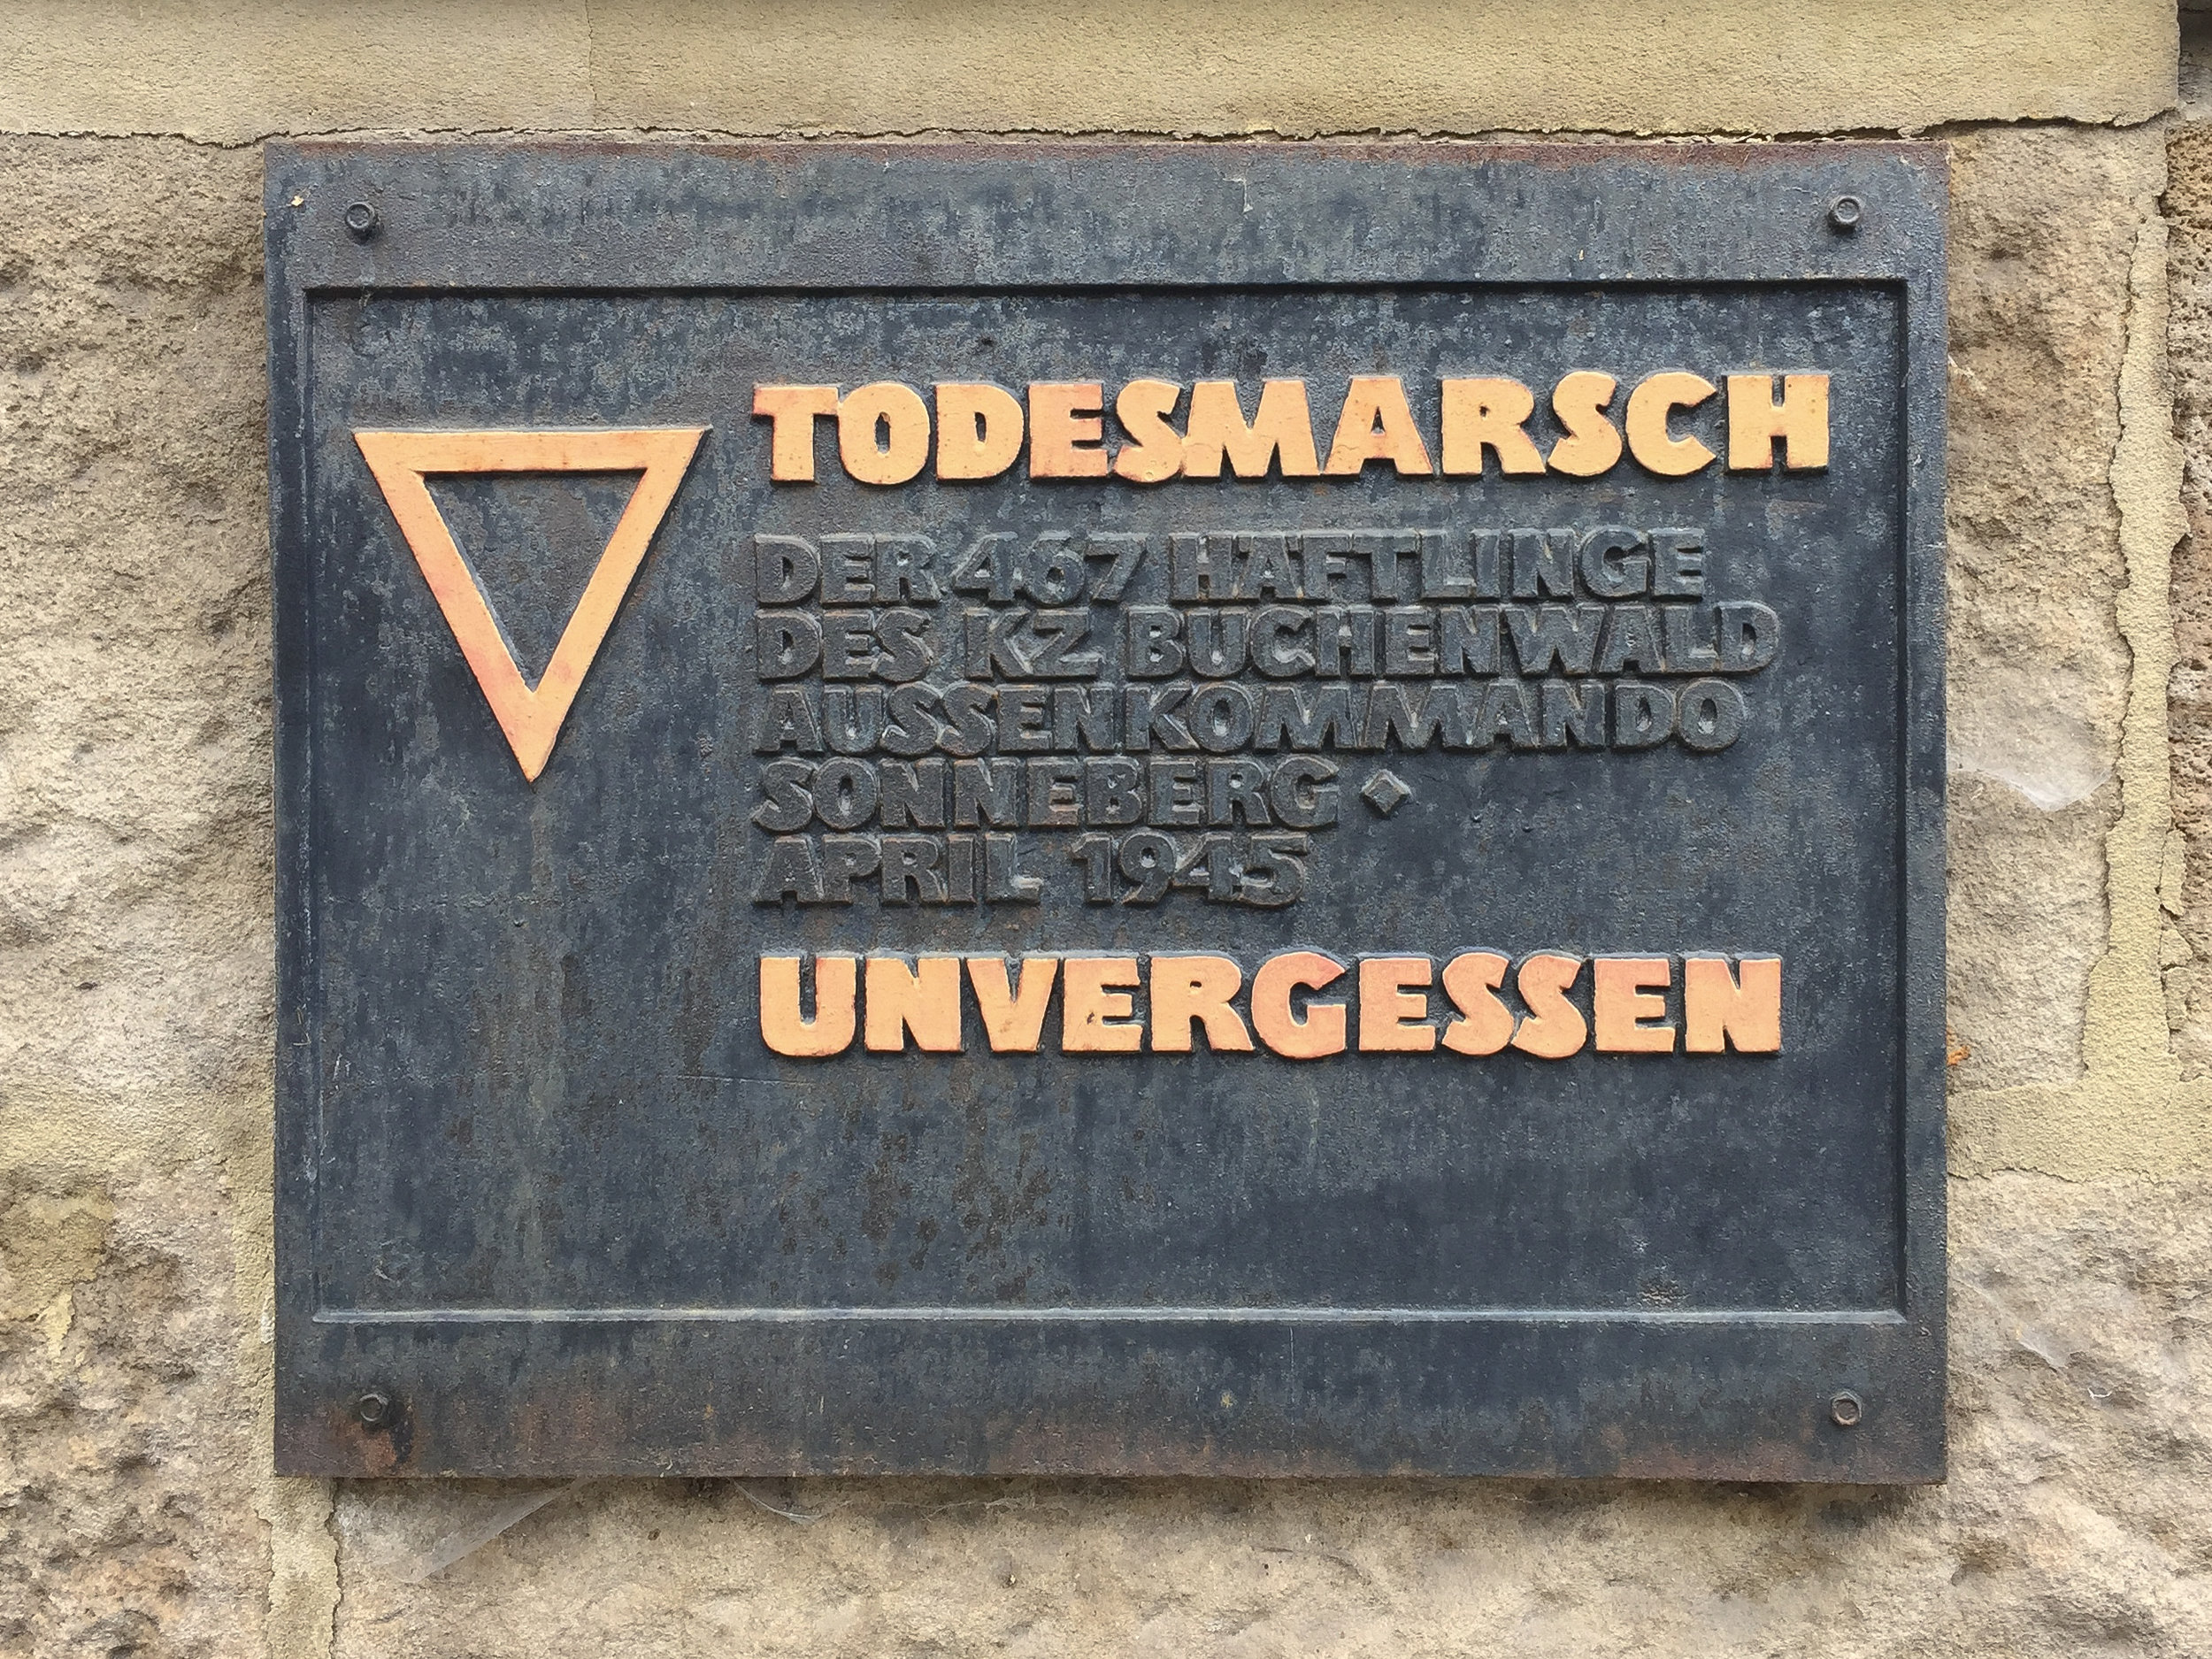 "Todesmarsch - This plaque recalls the ""death march"" for 467 prisoners from Sonneberg Germany:Death March The 467 prisoners of the KZ Buchenwald sub-camp Sonneberg.Unforgotten"